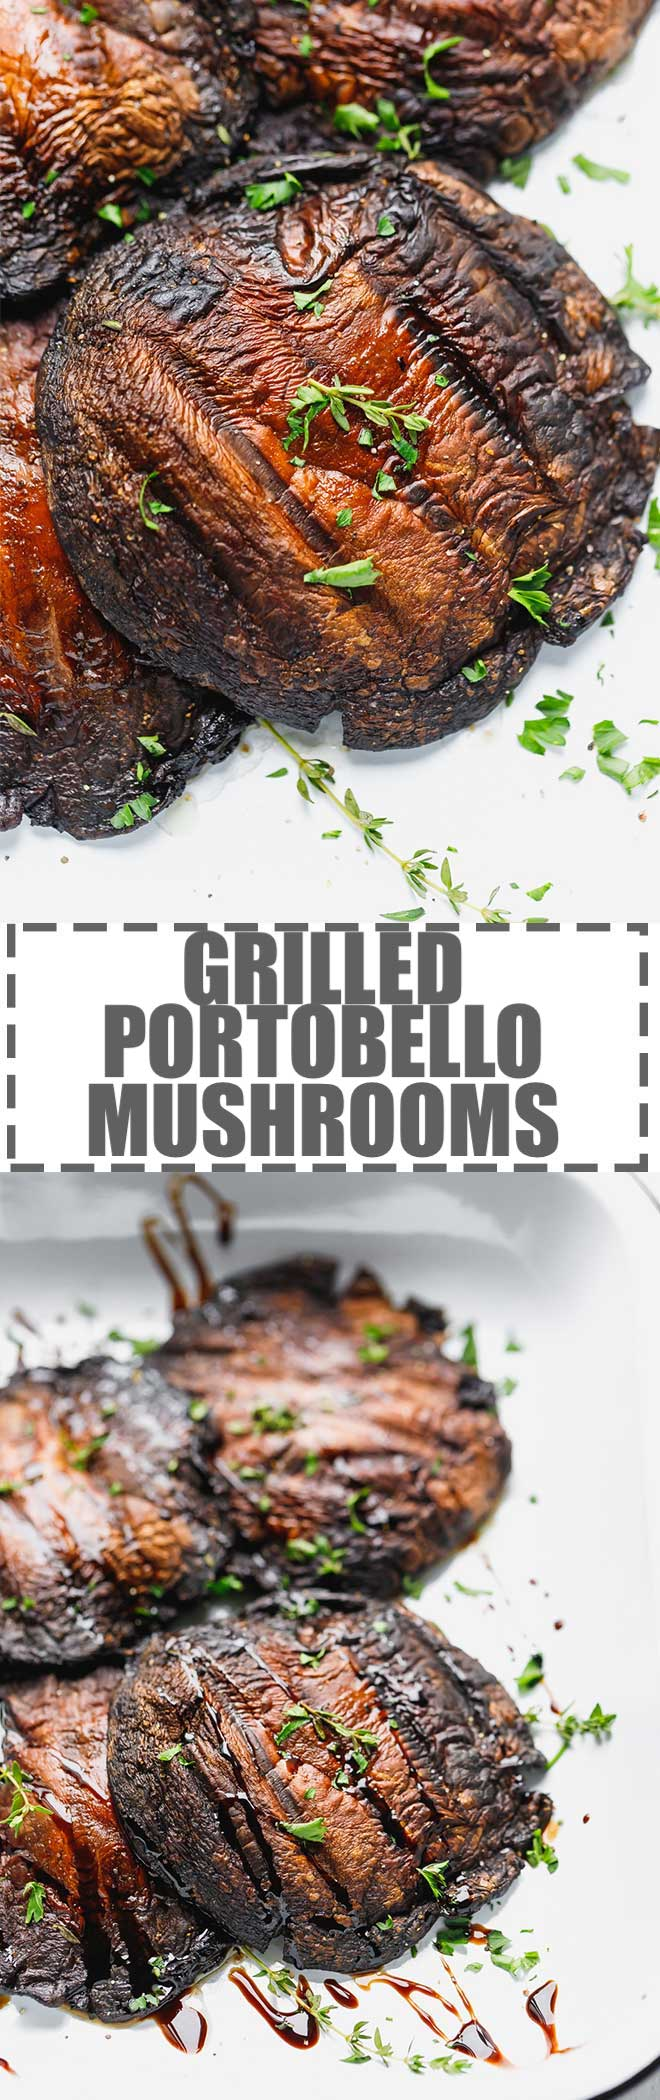 Make the perfect Grilled Portobello Mushrooms with minimal ingredients, under 15 minutes. Learn how to prepare portobello mushrooms for grilling, what toppings to use and different ways to serve them. #grilledmushrooms #potobellomushrooms